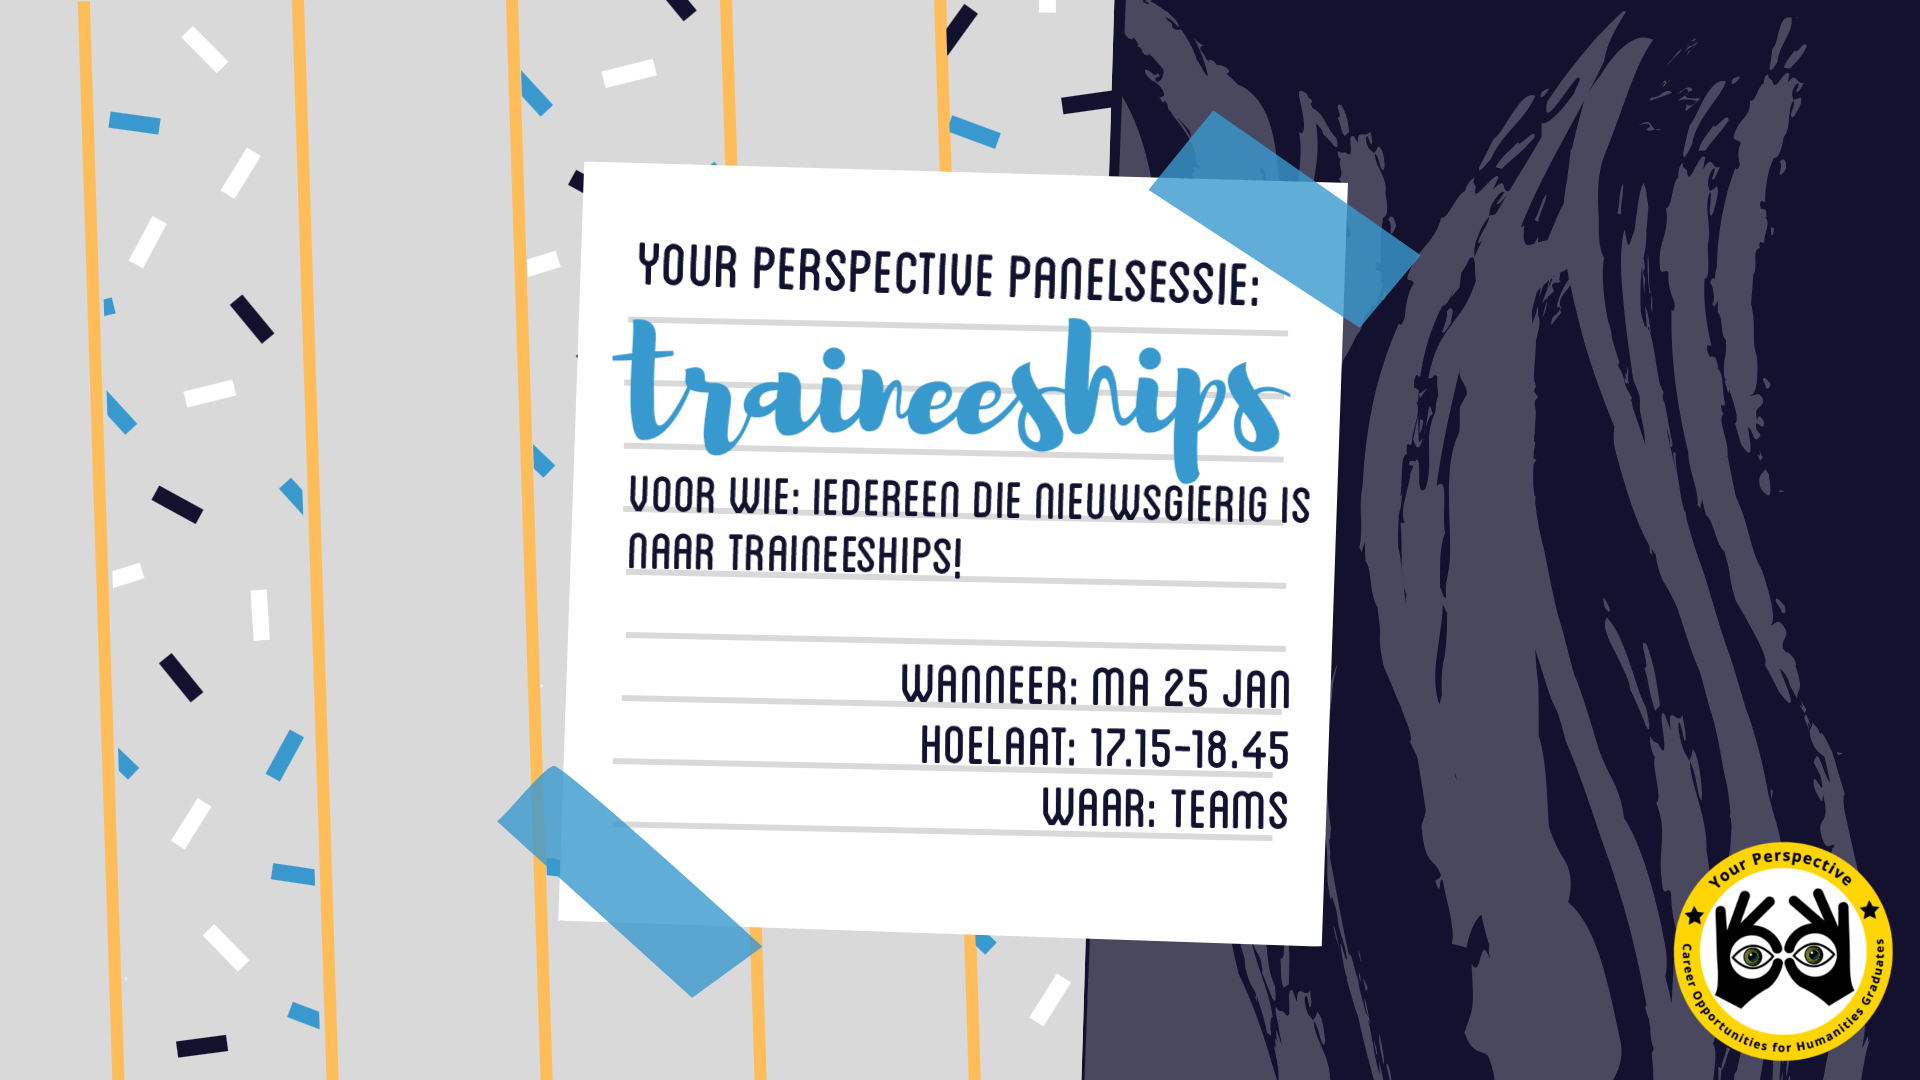 Your Perspective panelsessie: Traineeships